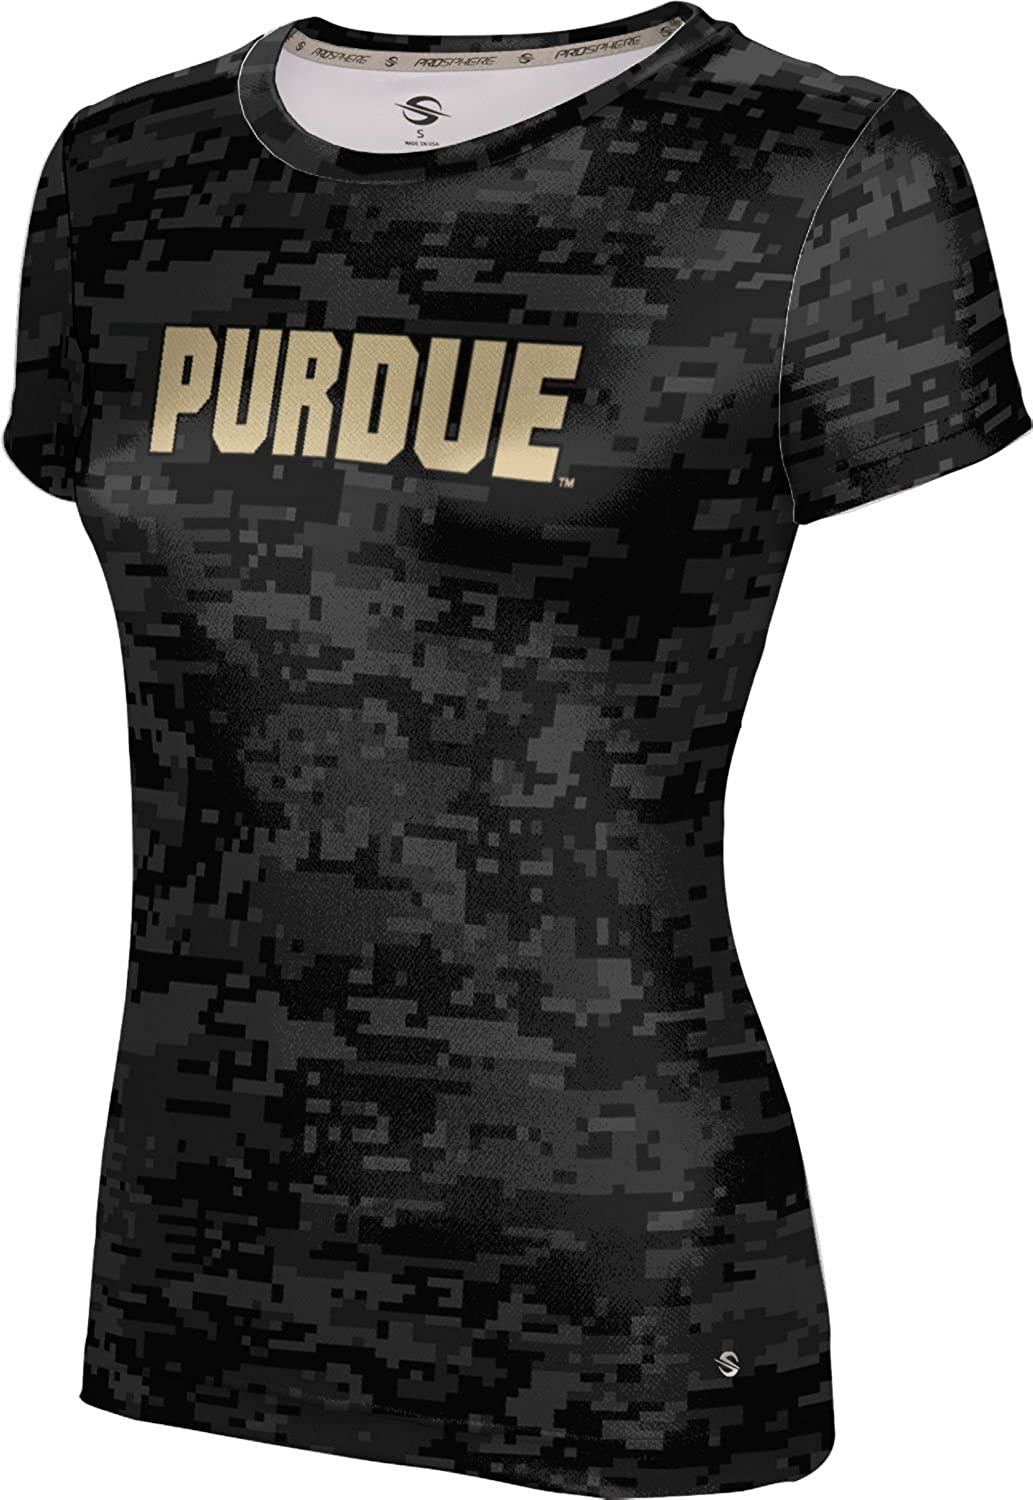 Digi Camo ProSphere Purdue University Girls Performance T-Shirt